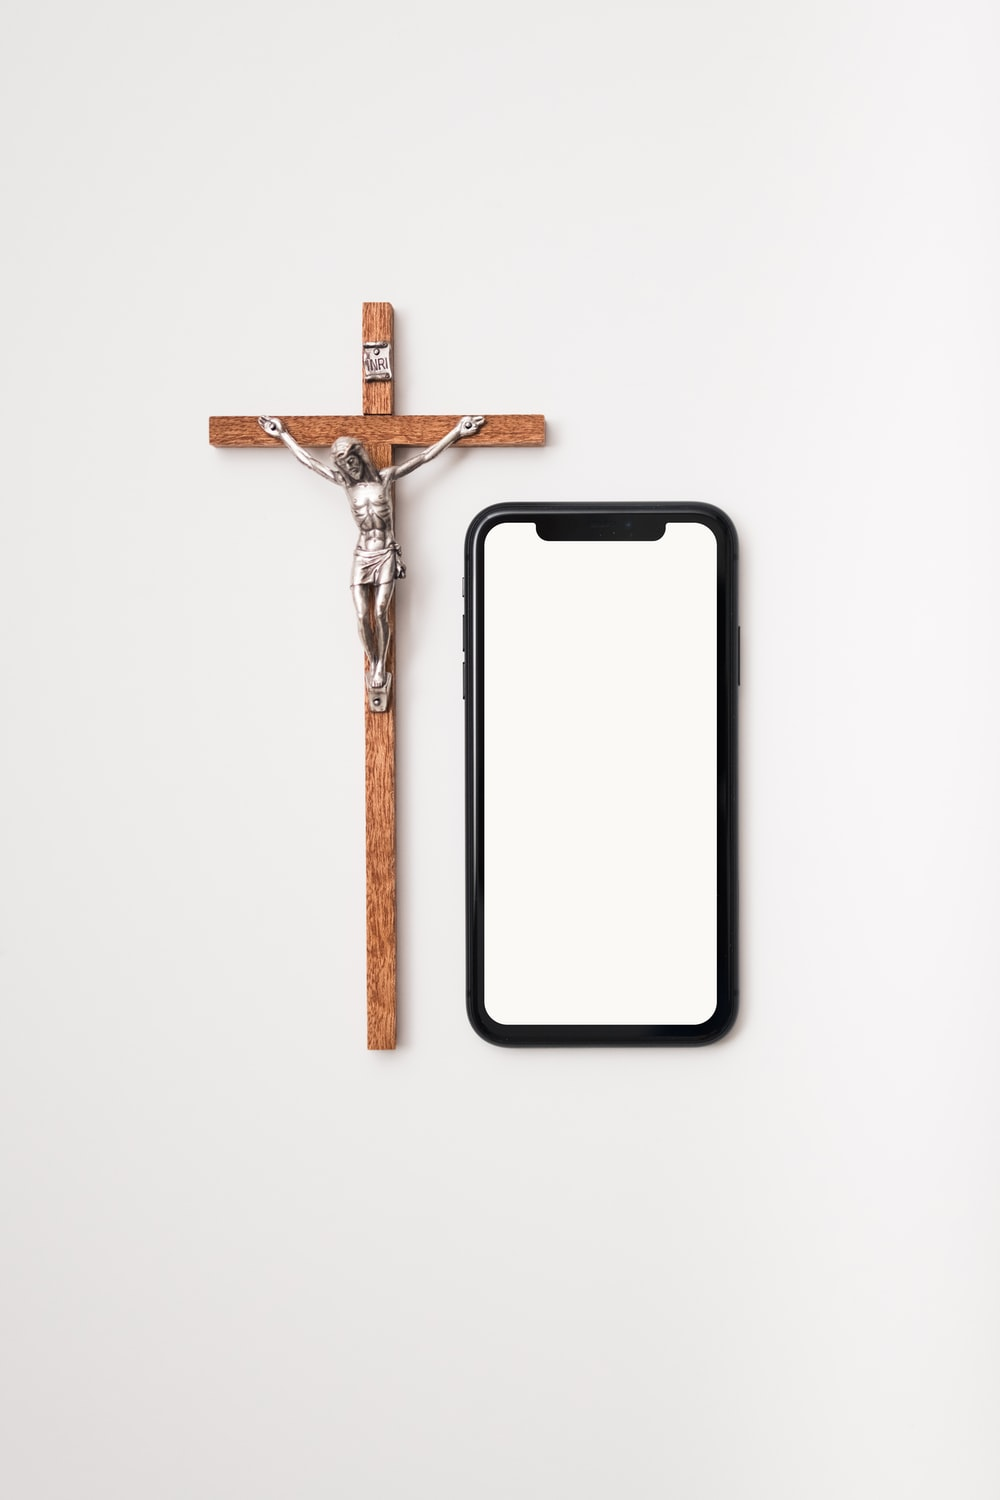 brown wooden cross with white background